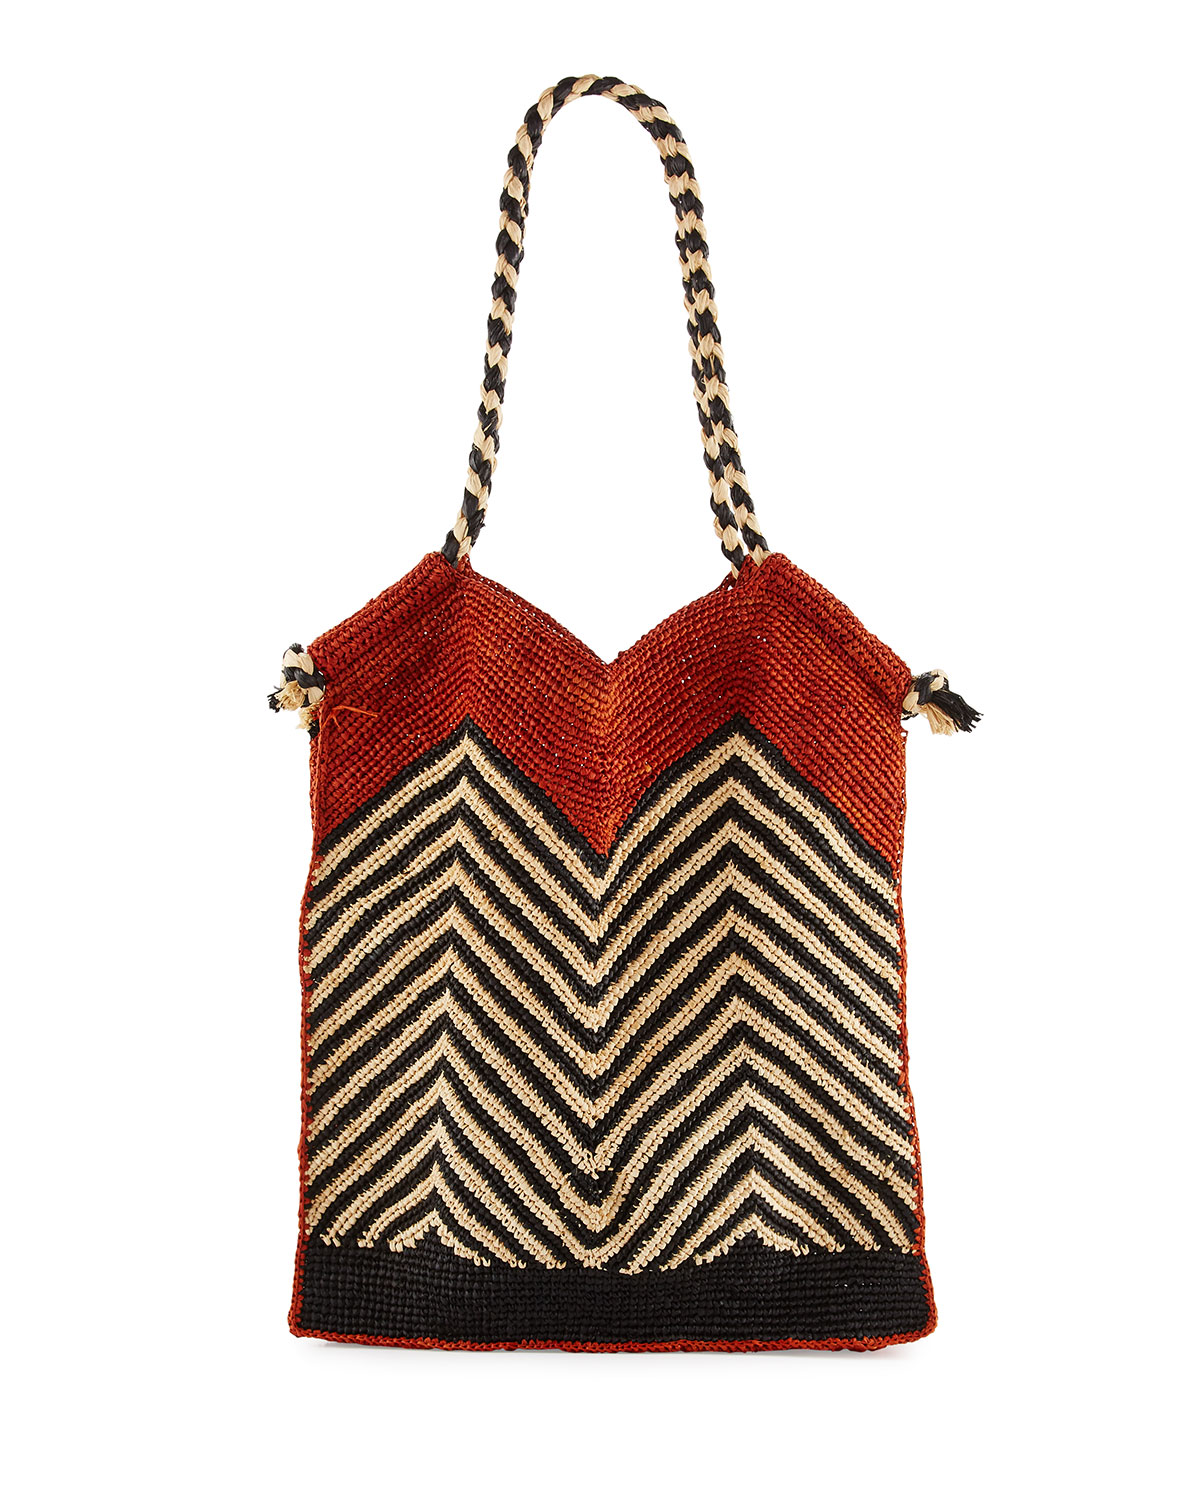 Indo Chevron Woven Straw Beach Tote Bag, White